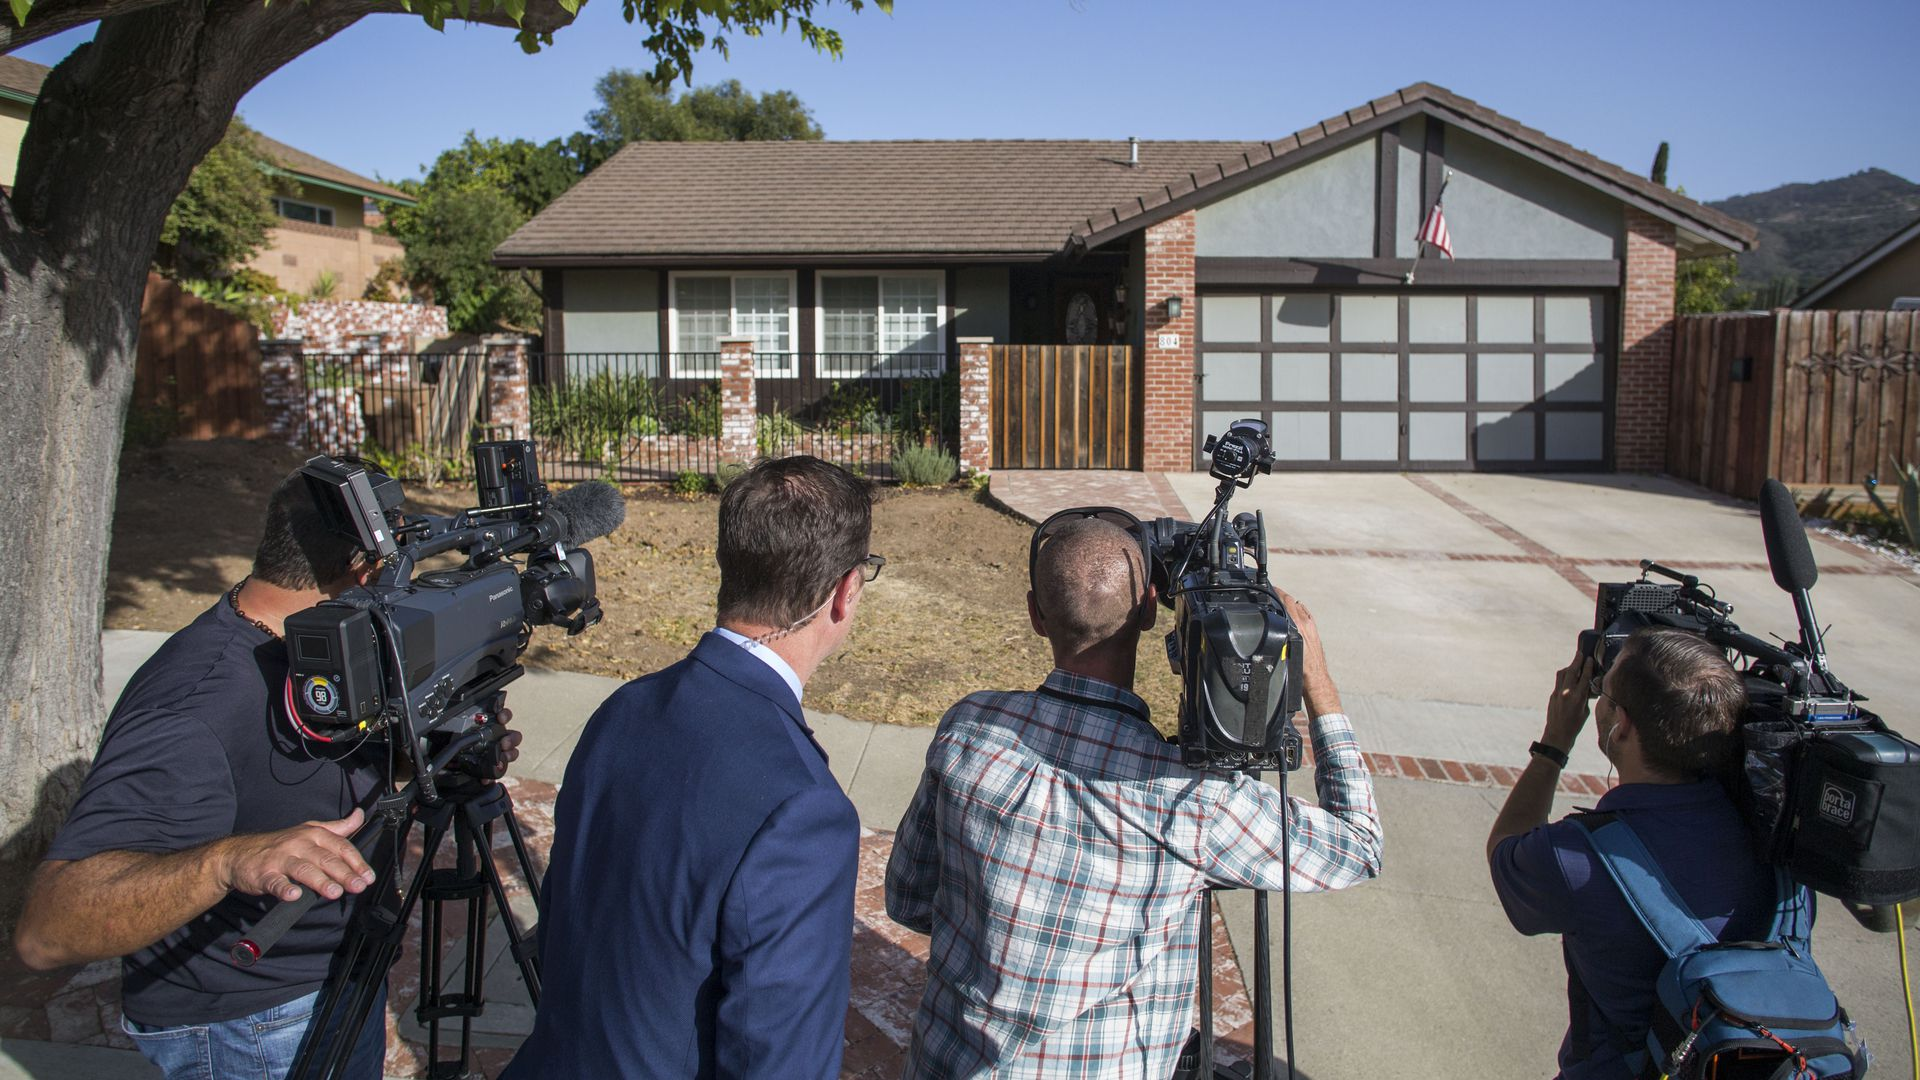 Media crowds outside of suspected California shooter's home.